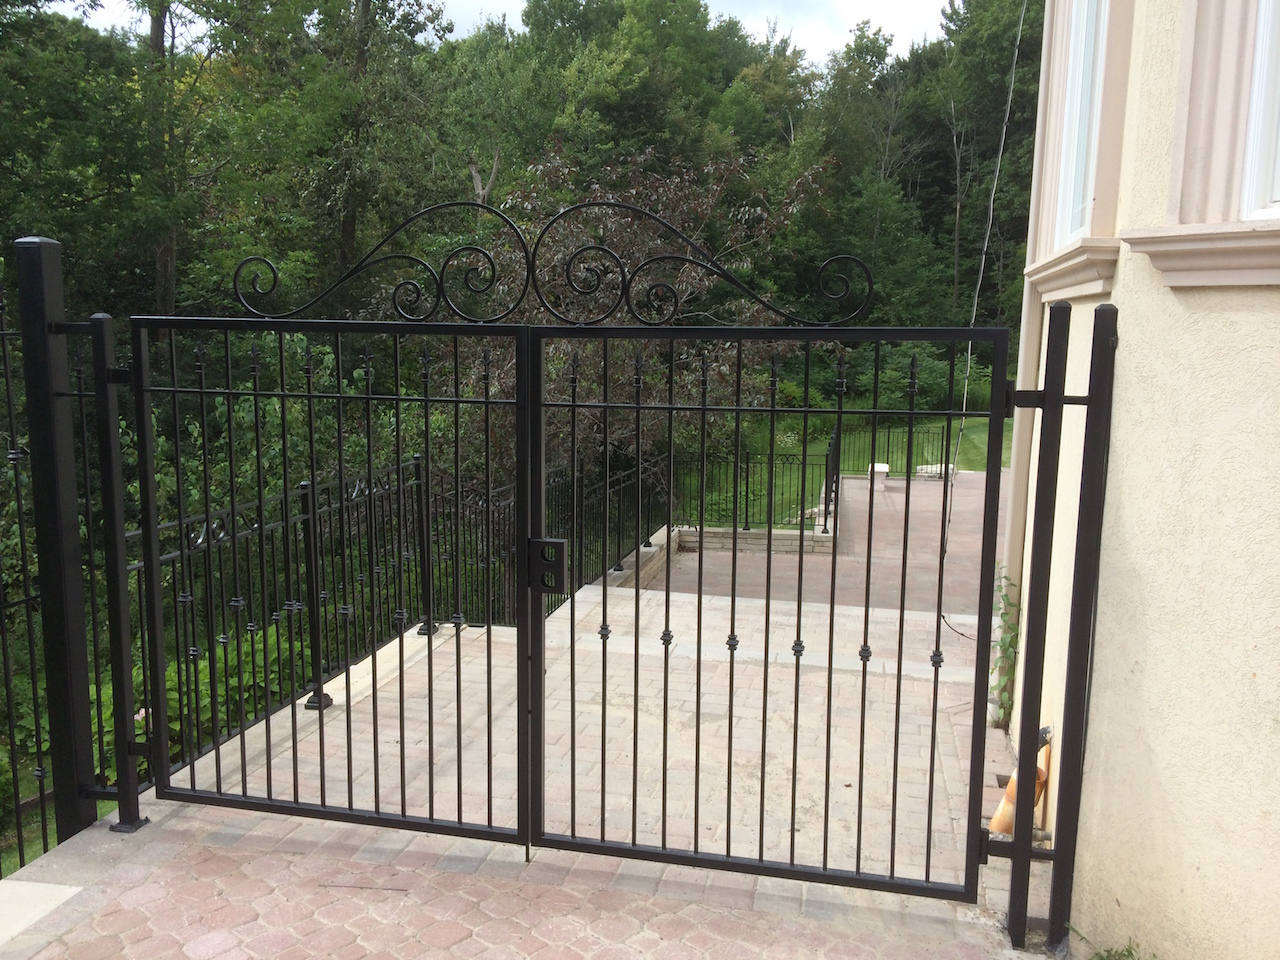 Gallery Wrought Iron Gates Fences Innovative Metal Works